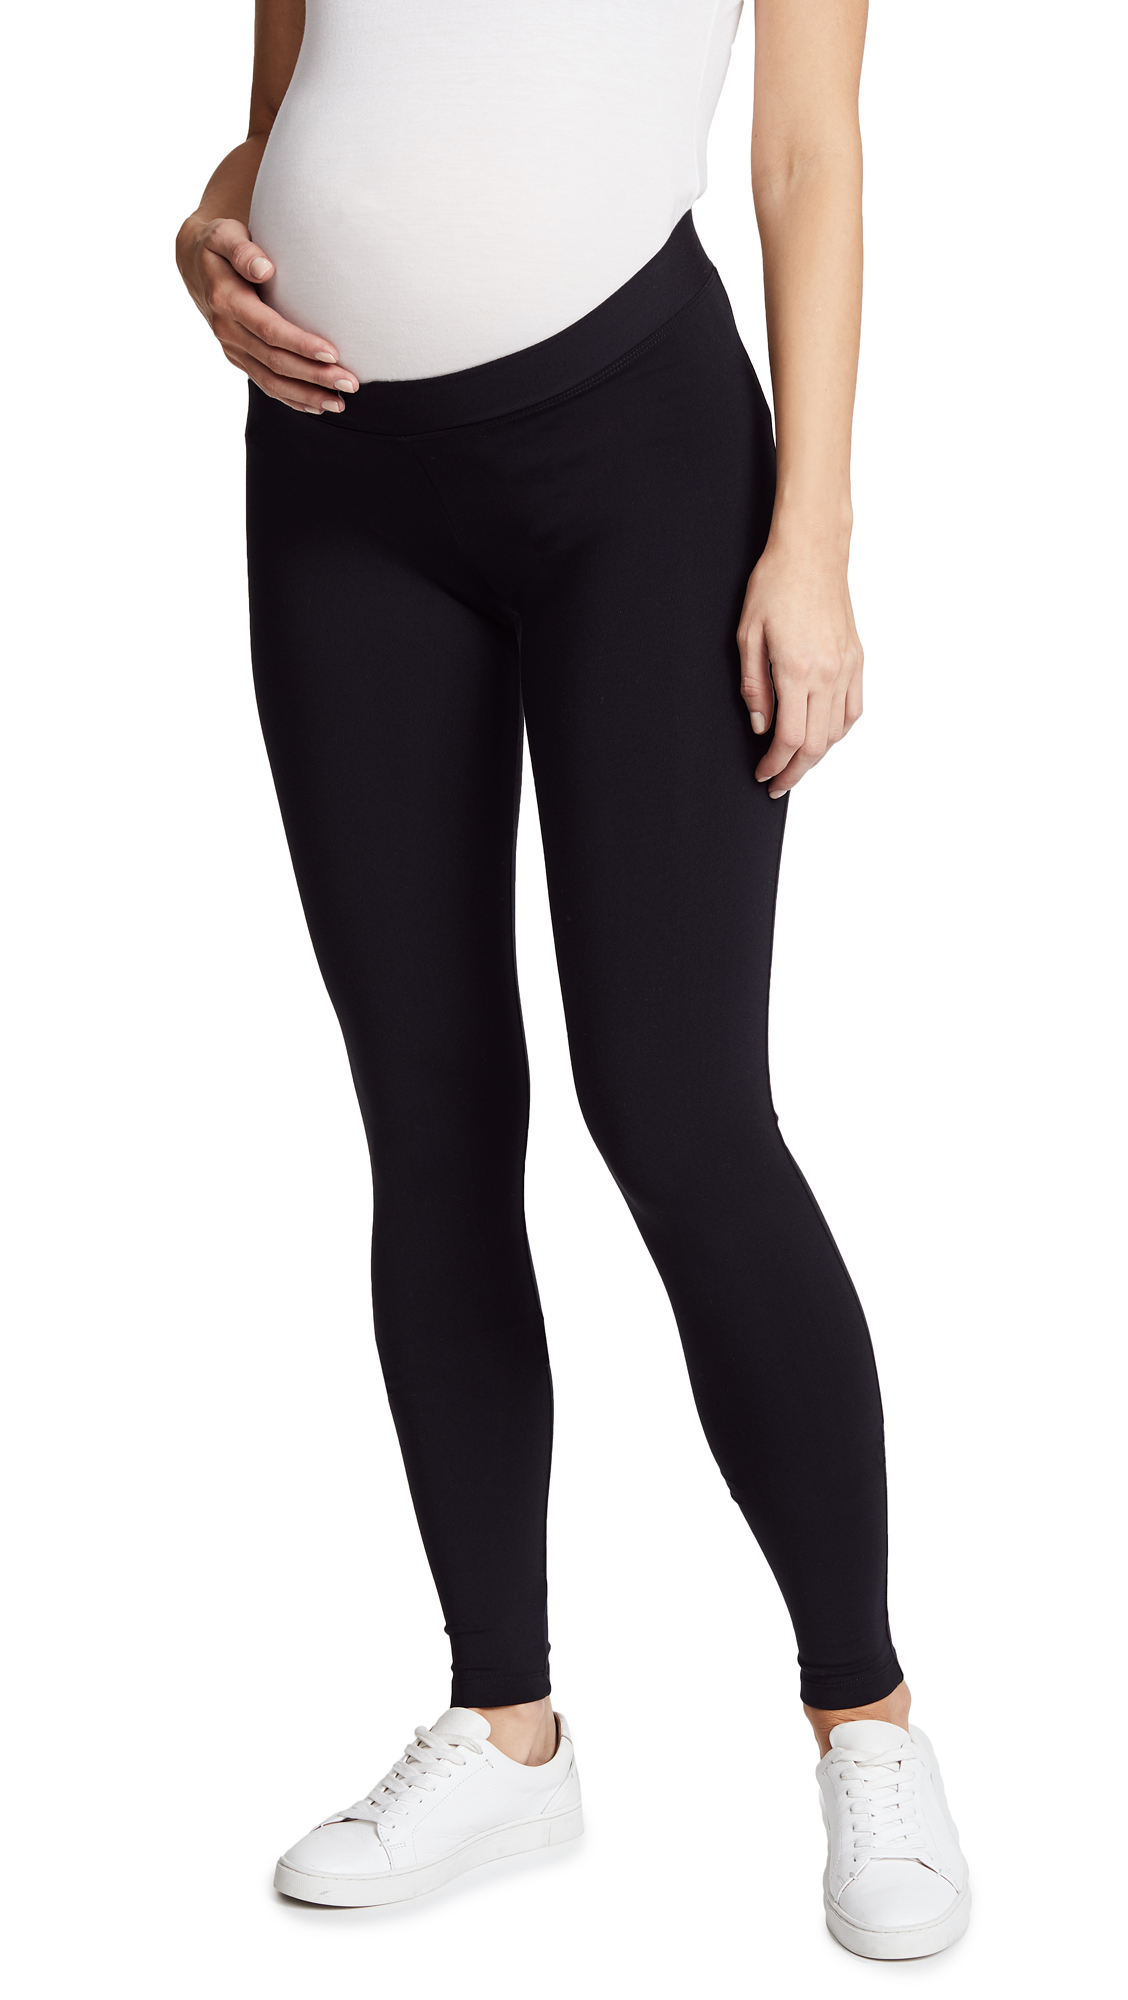 HATCH The Premium Leggings